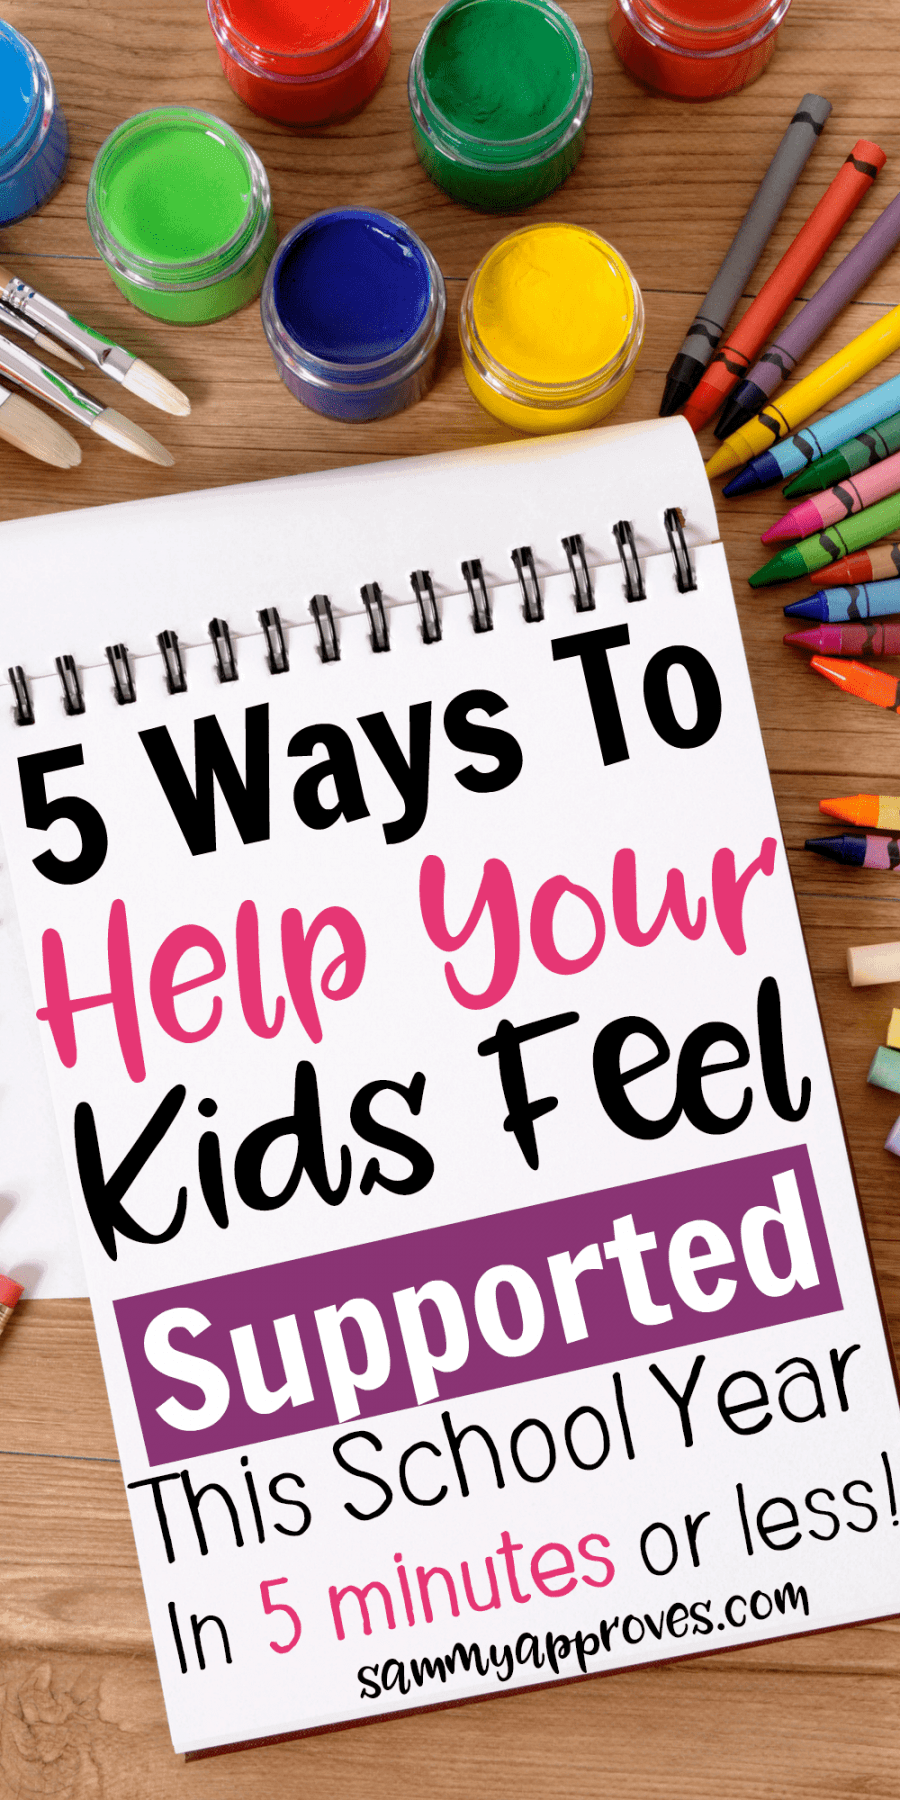 5 Ways to Help Your Kids Feel Supported During the School Year